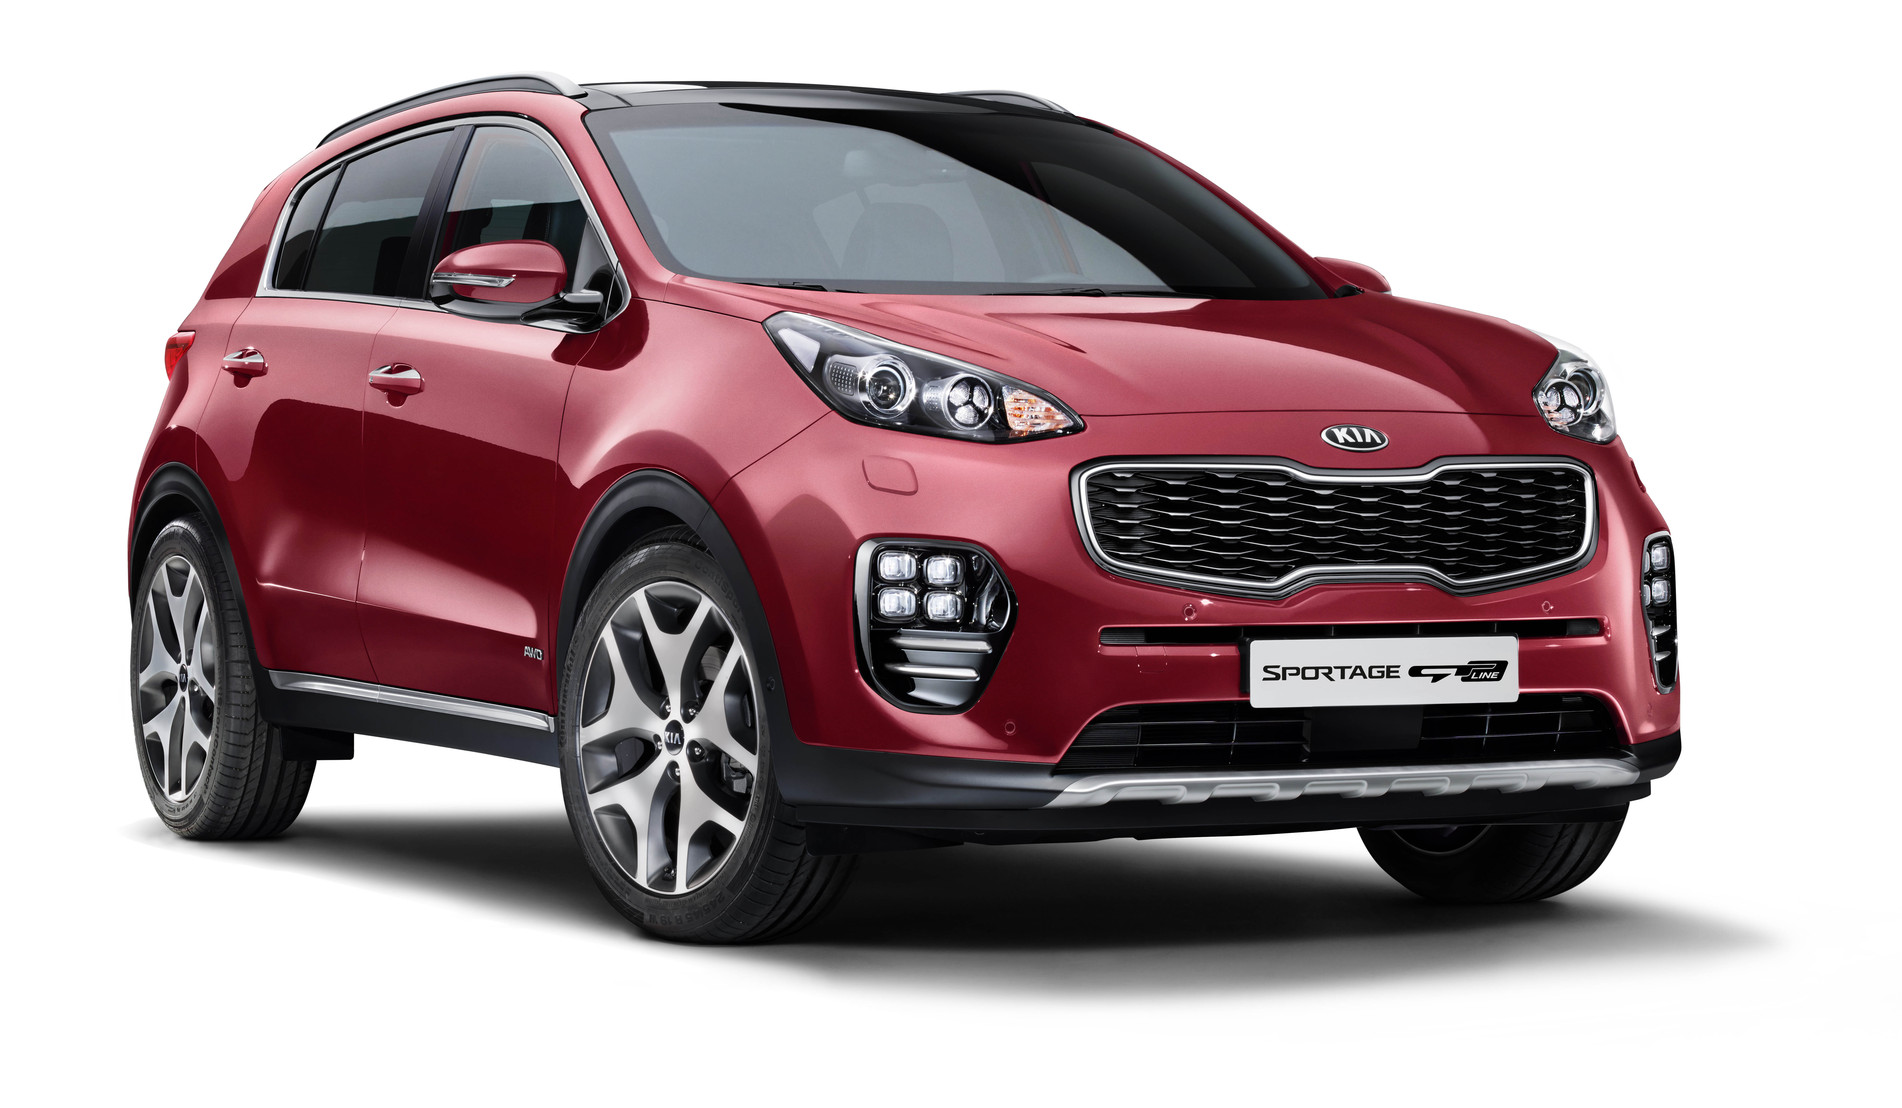 kia_sportage_gt_line_my16_body_color_infra_red(aa1)_7946_42700